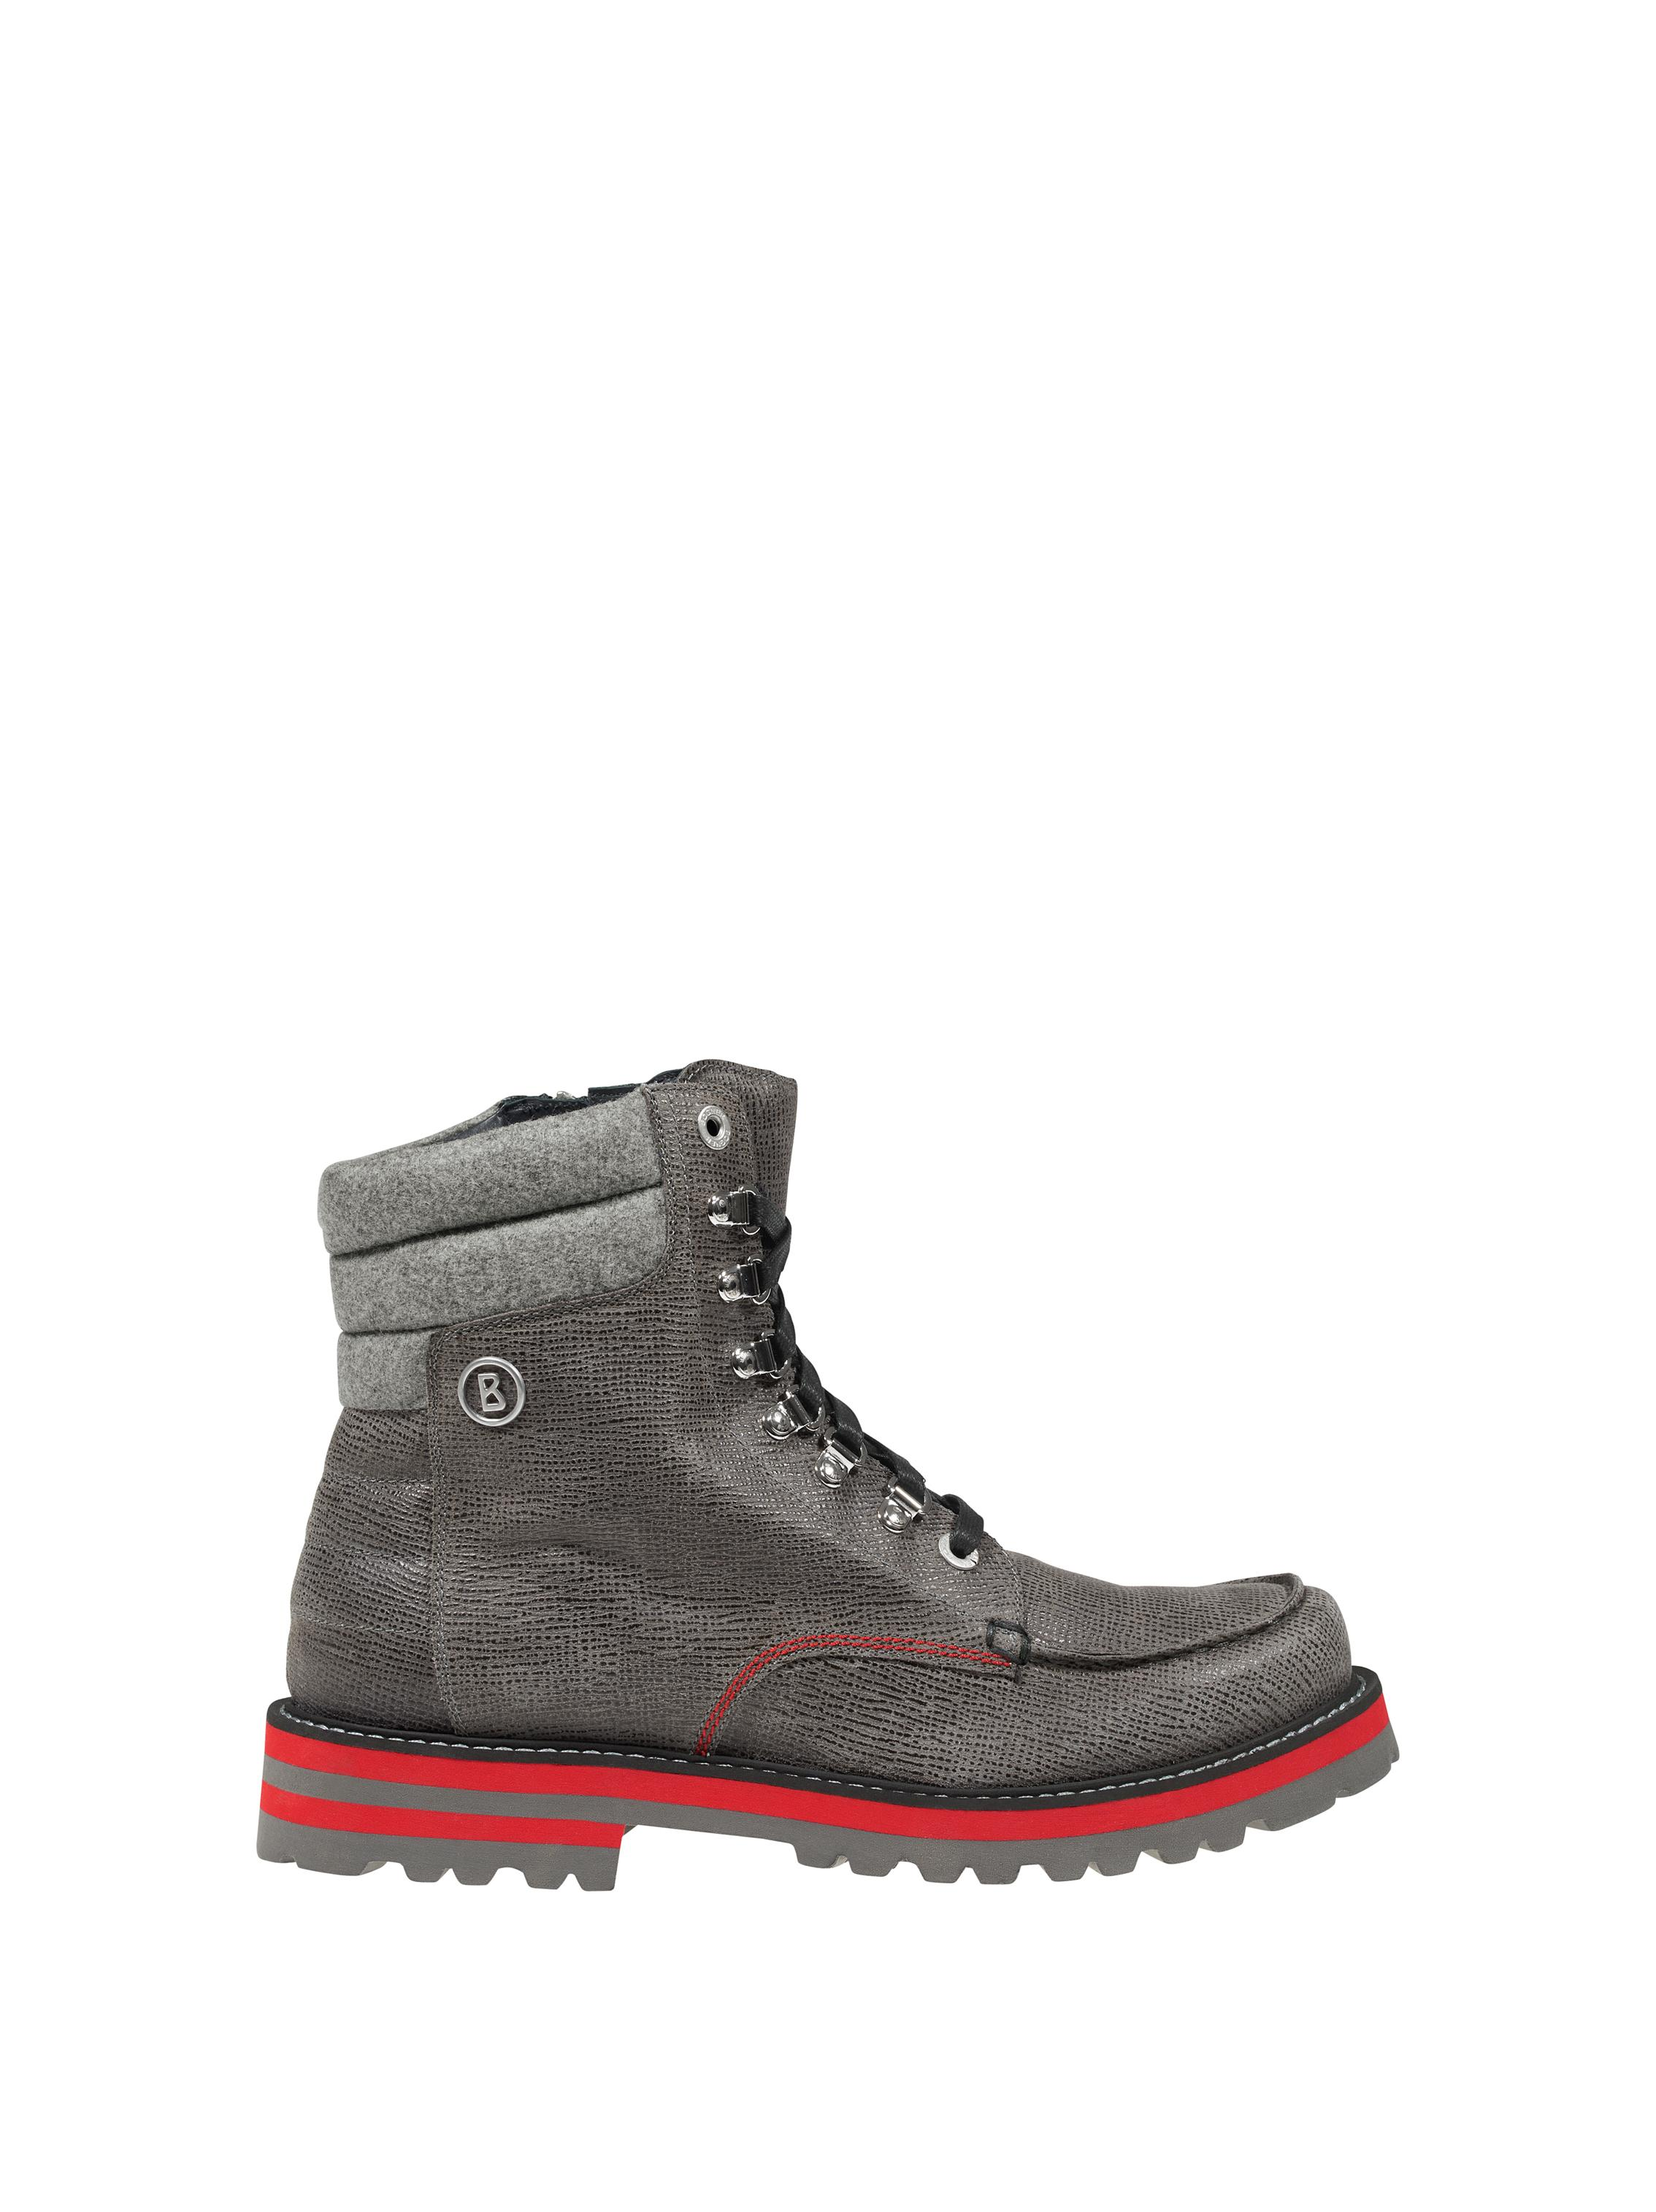 Lyst Bogner Boots Courchevel In Gray For Men